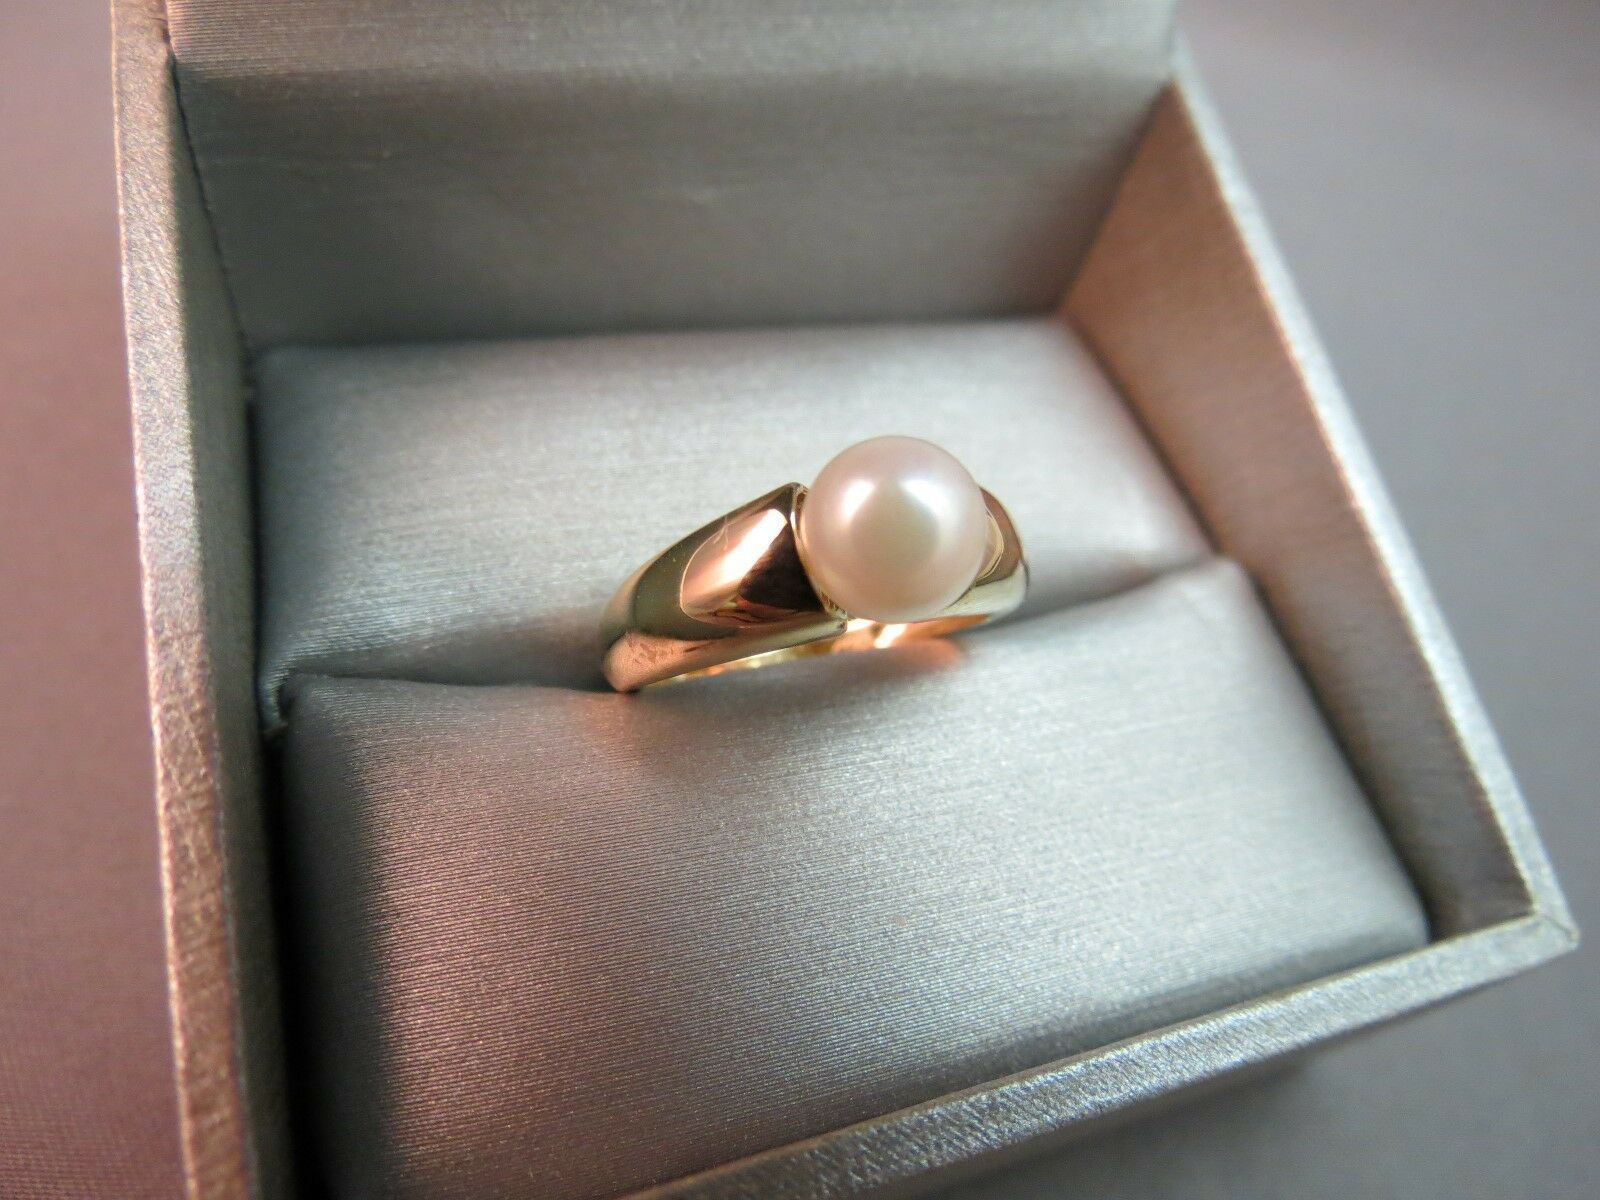 Vintage 14K Yellow Gold Pearl Wide Band Ring Size 6.75 Designer WW 7mm